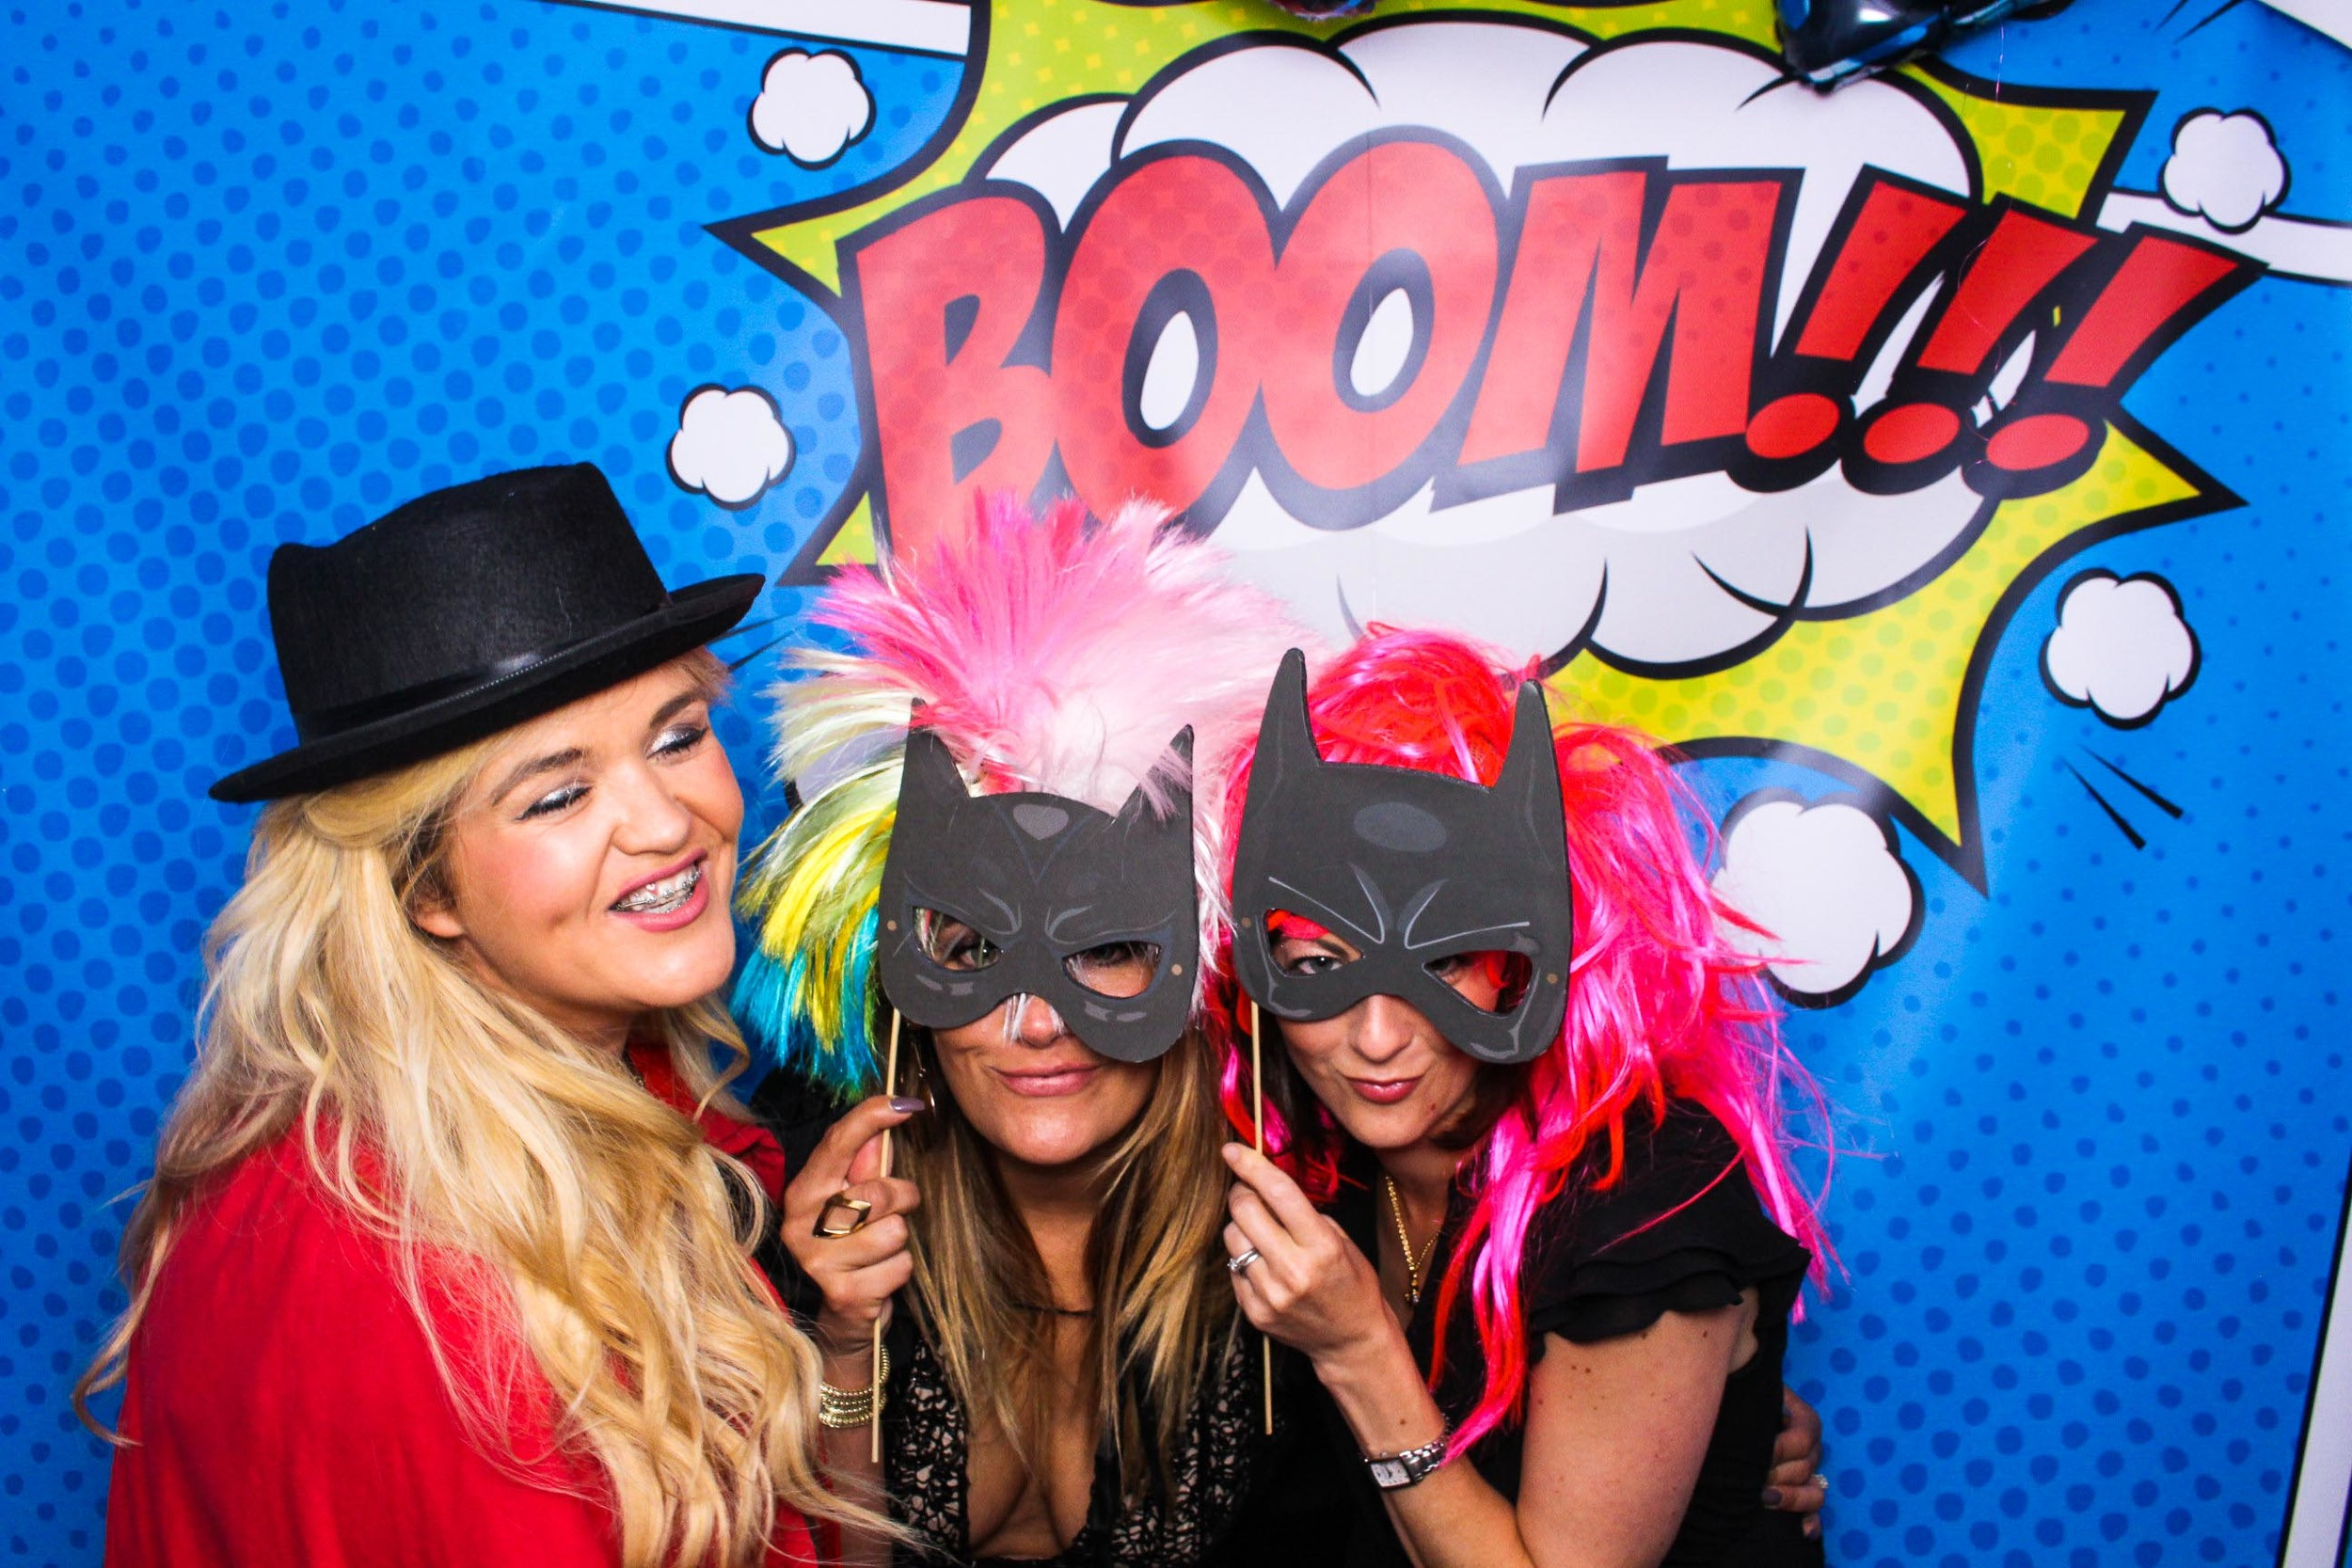 Fotoauto Photo Booth Hire - Shop Direct-158.jpg